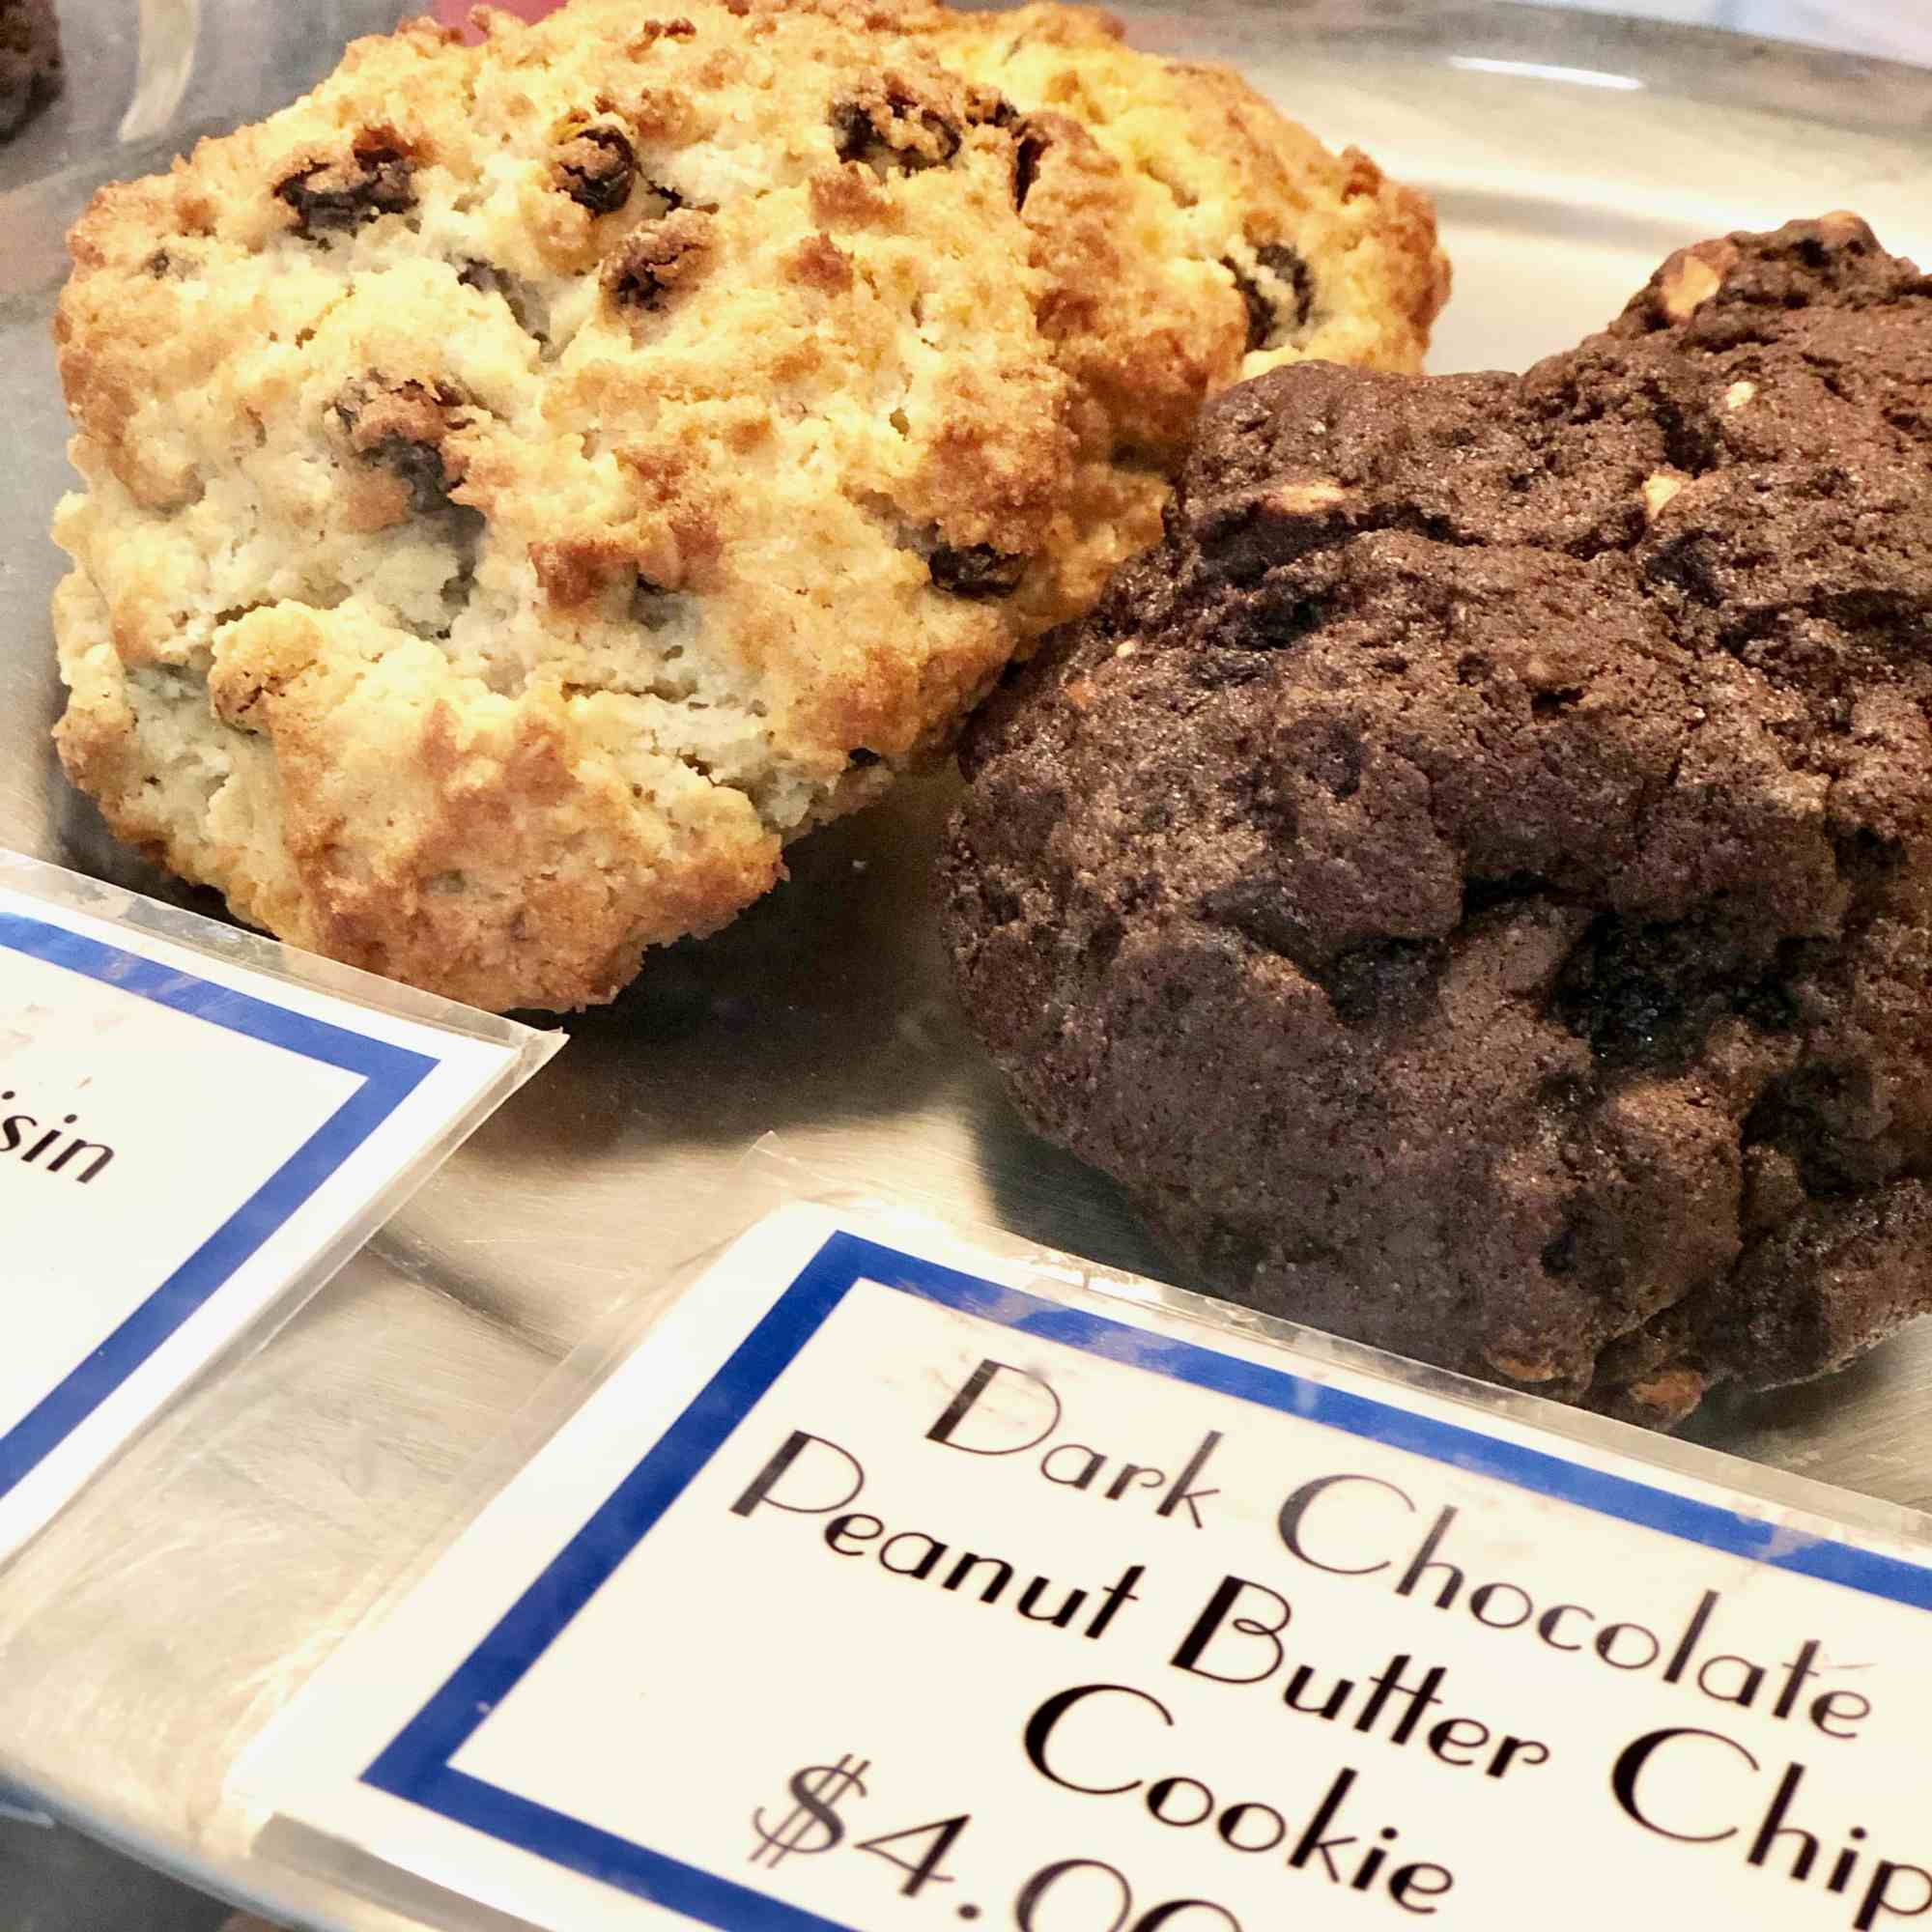 Cookies at Levain Bakery, New York City